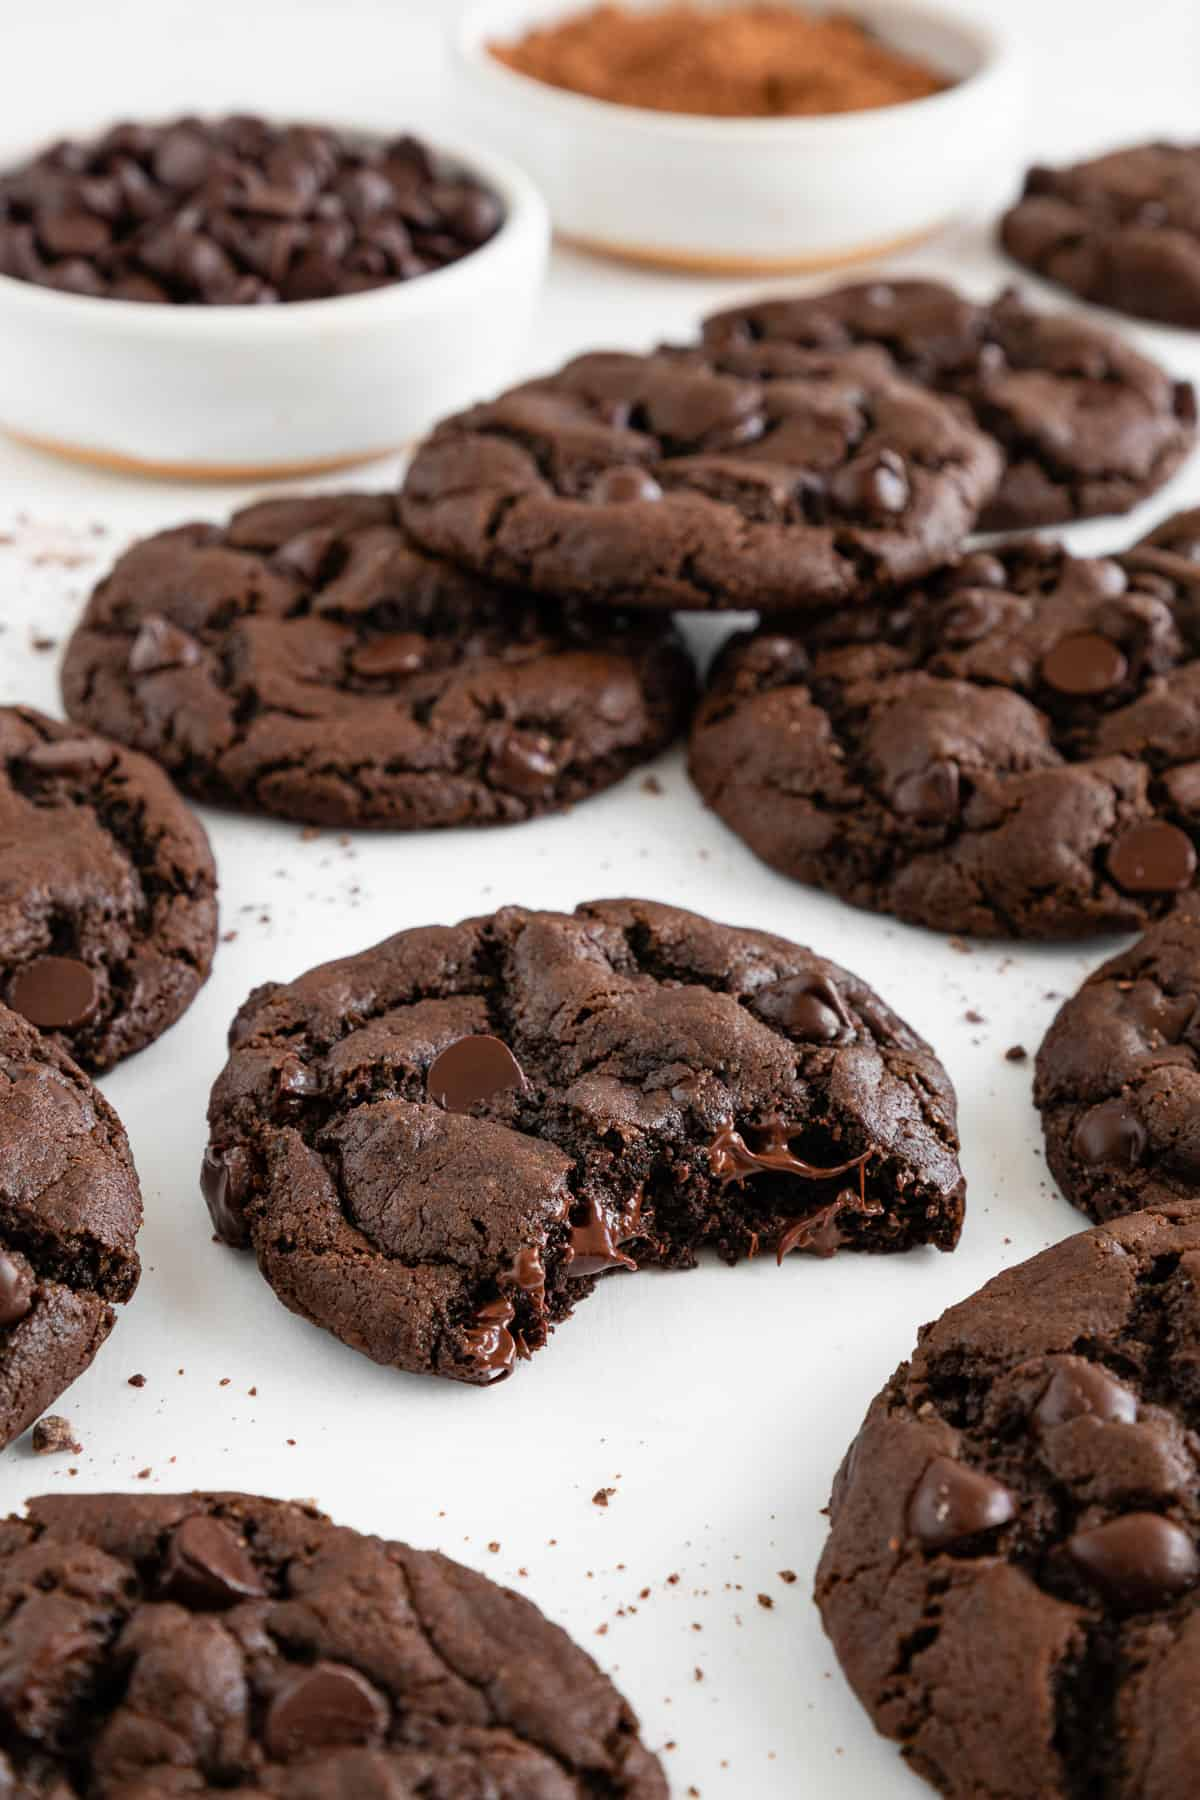 a gooey vegan double chocolate chip cookie with a bite taken out of it, surrounded by a dozen more cookies and a bowl of cocoa powder